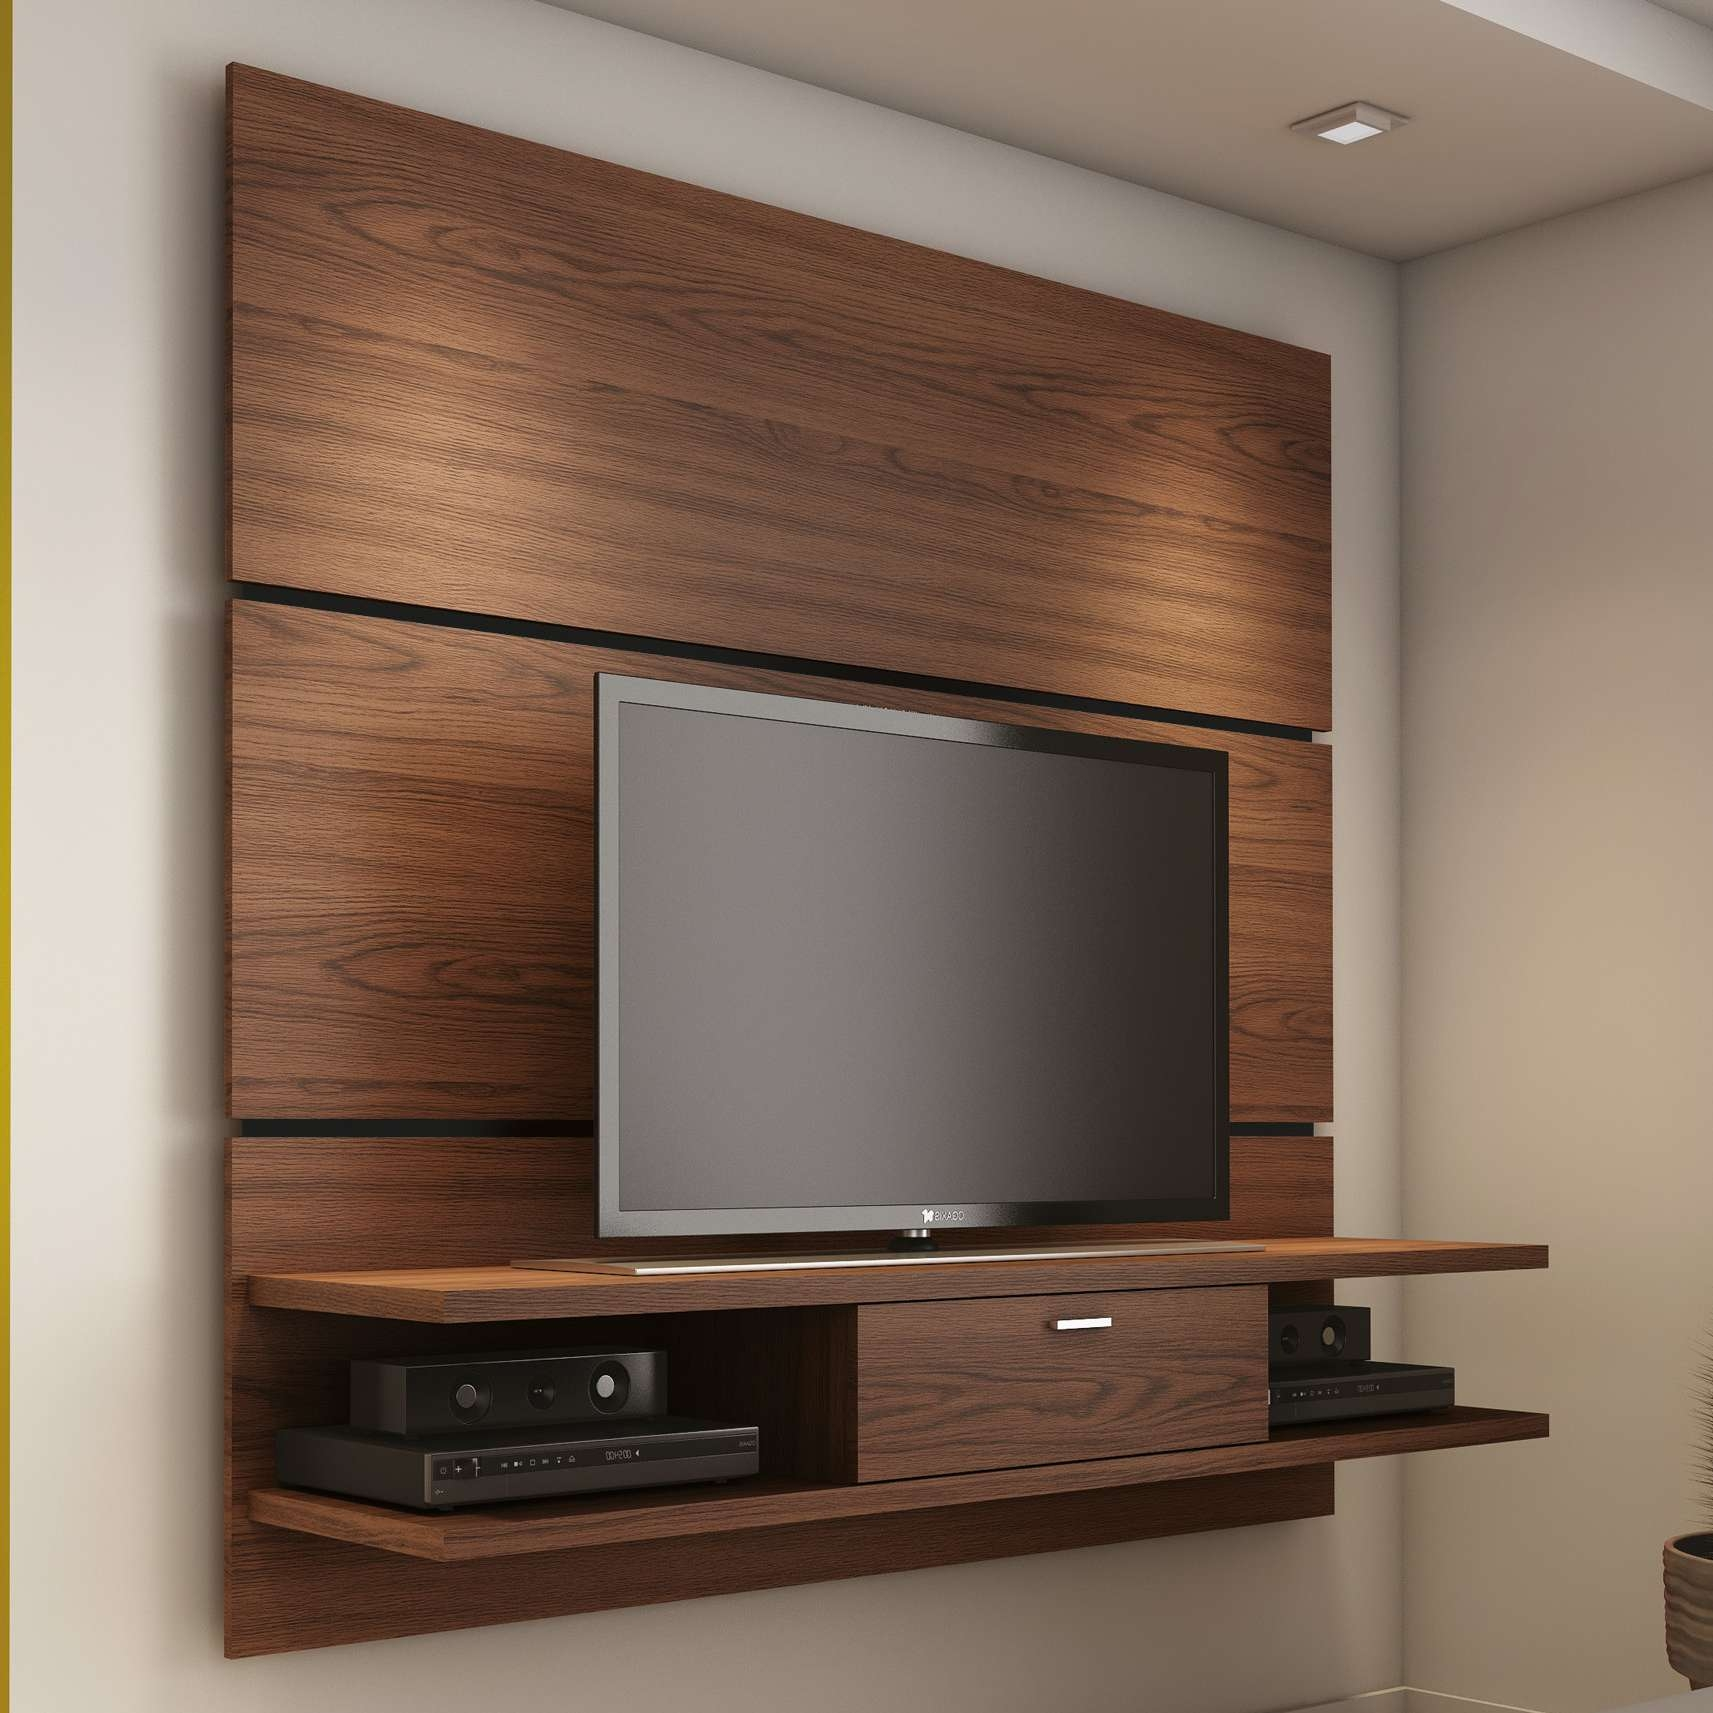 Wall Units: Best Wayfair Tv Stands Tv Stands For 65 Inch Flat Within Tv Cabinets And Wall Units (View 14 of 20)